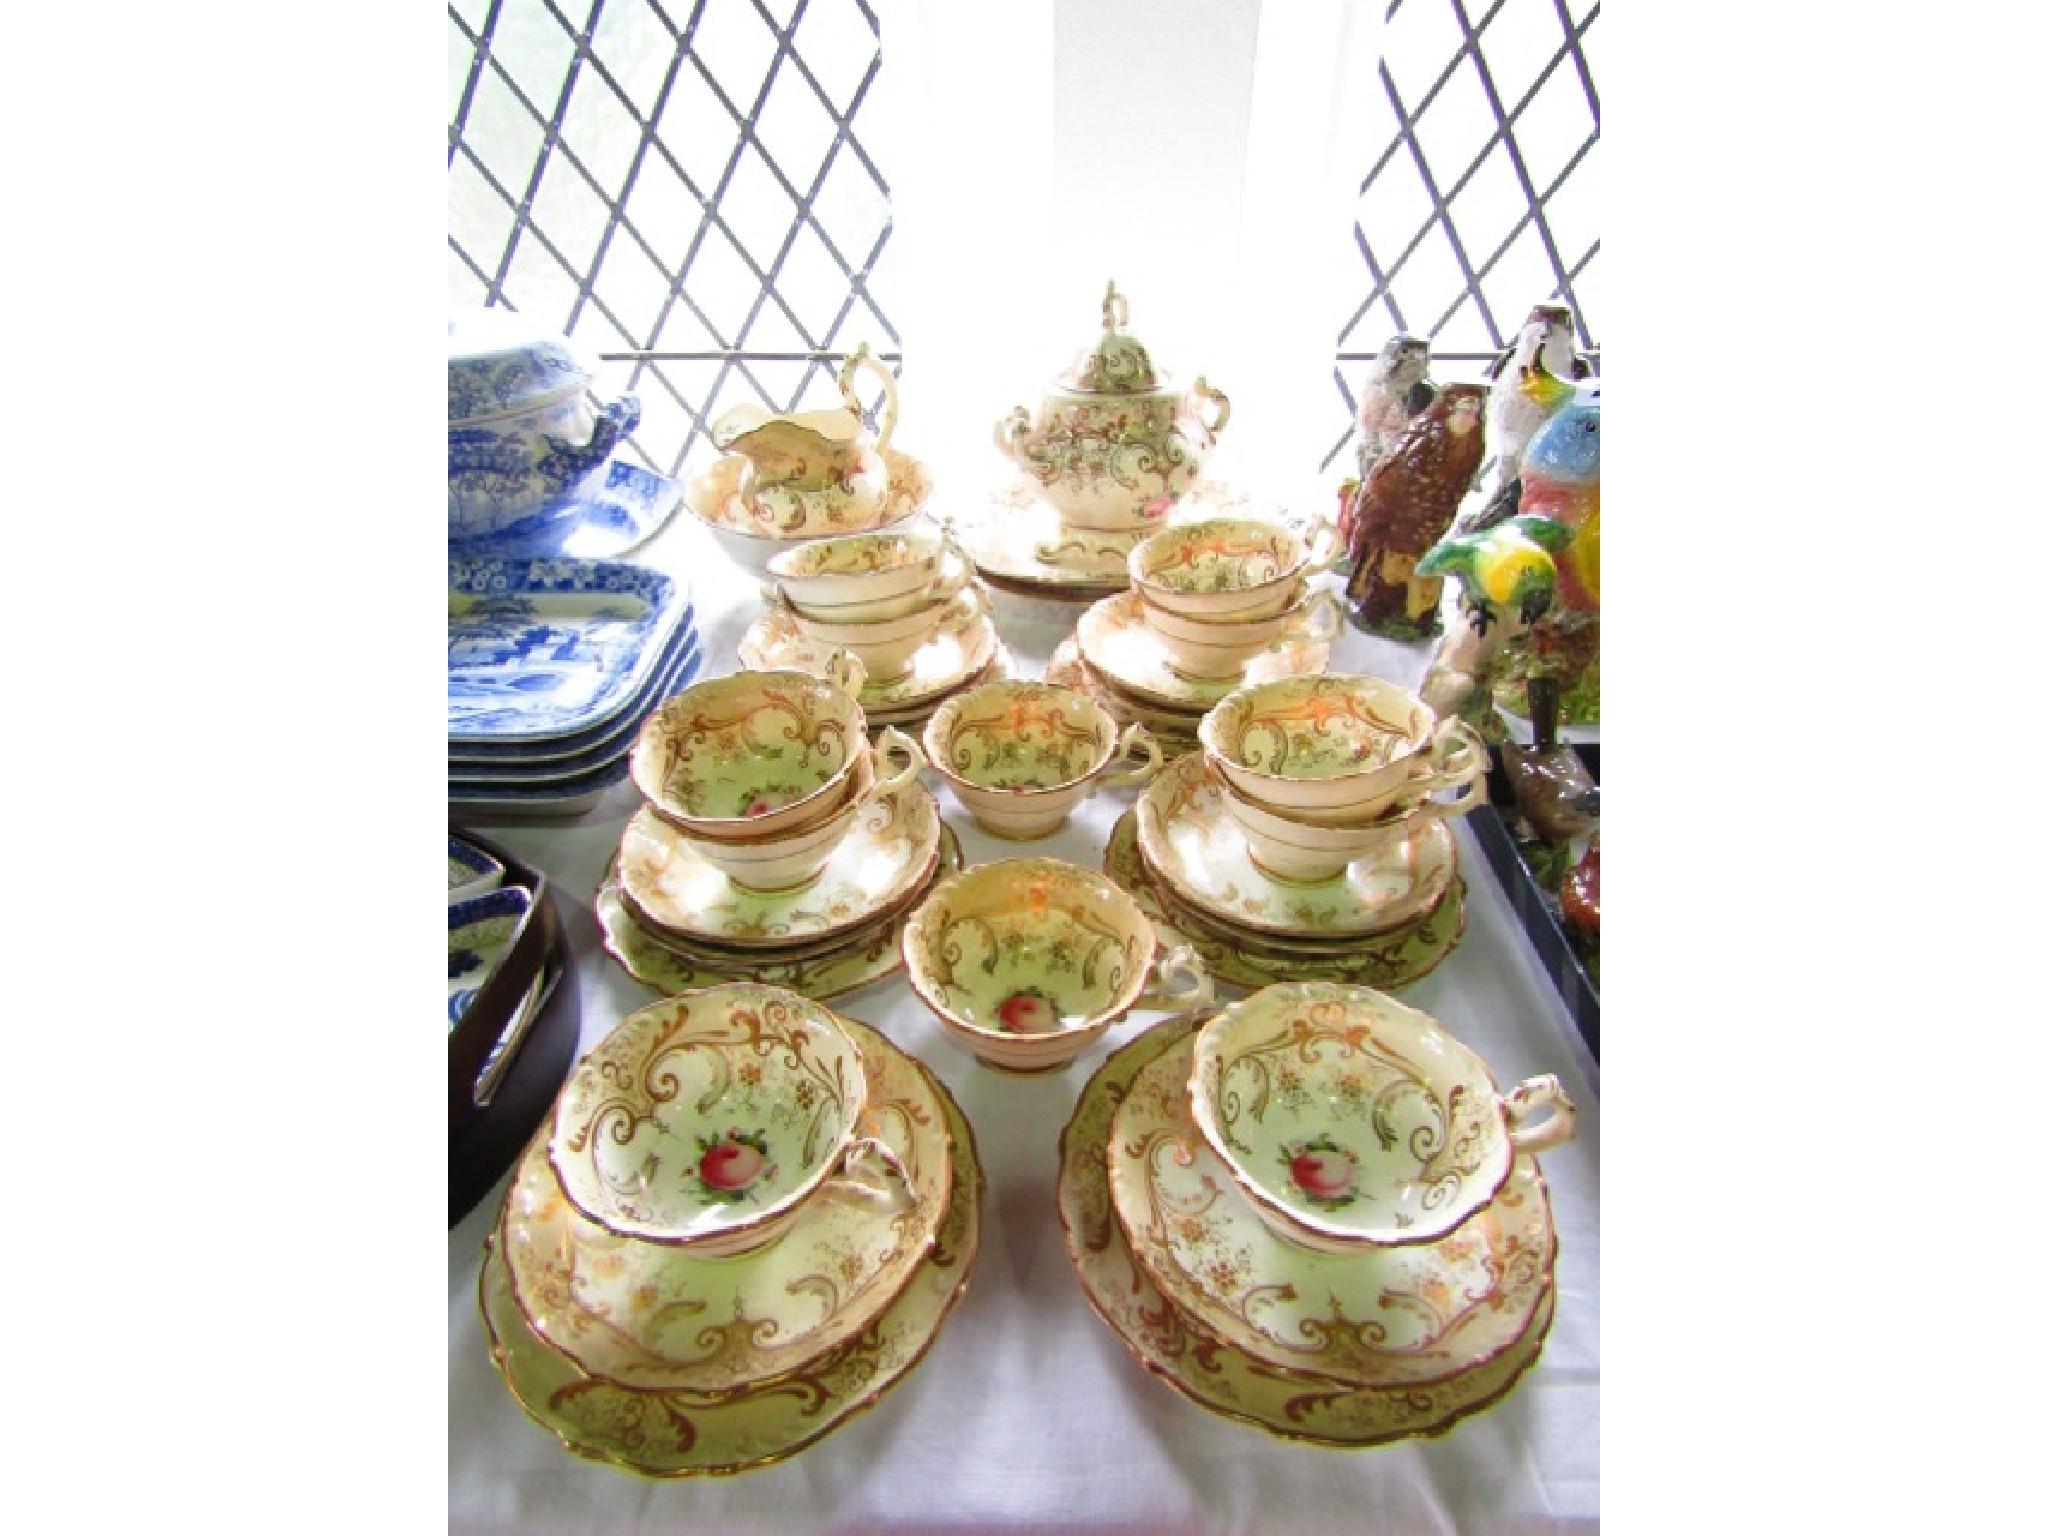 A collection of Victorian tea wares with